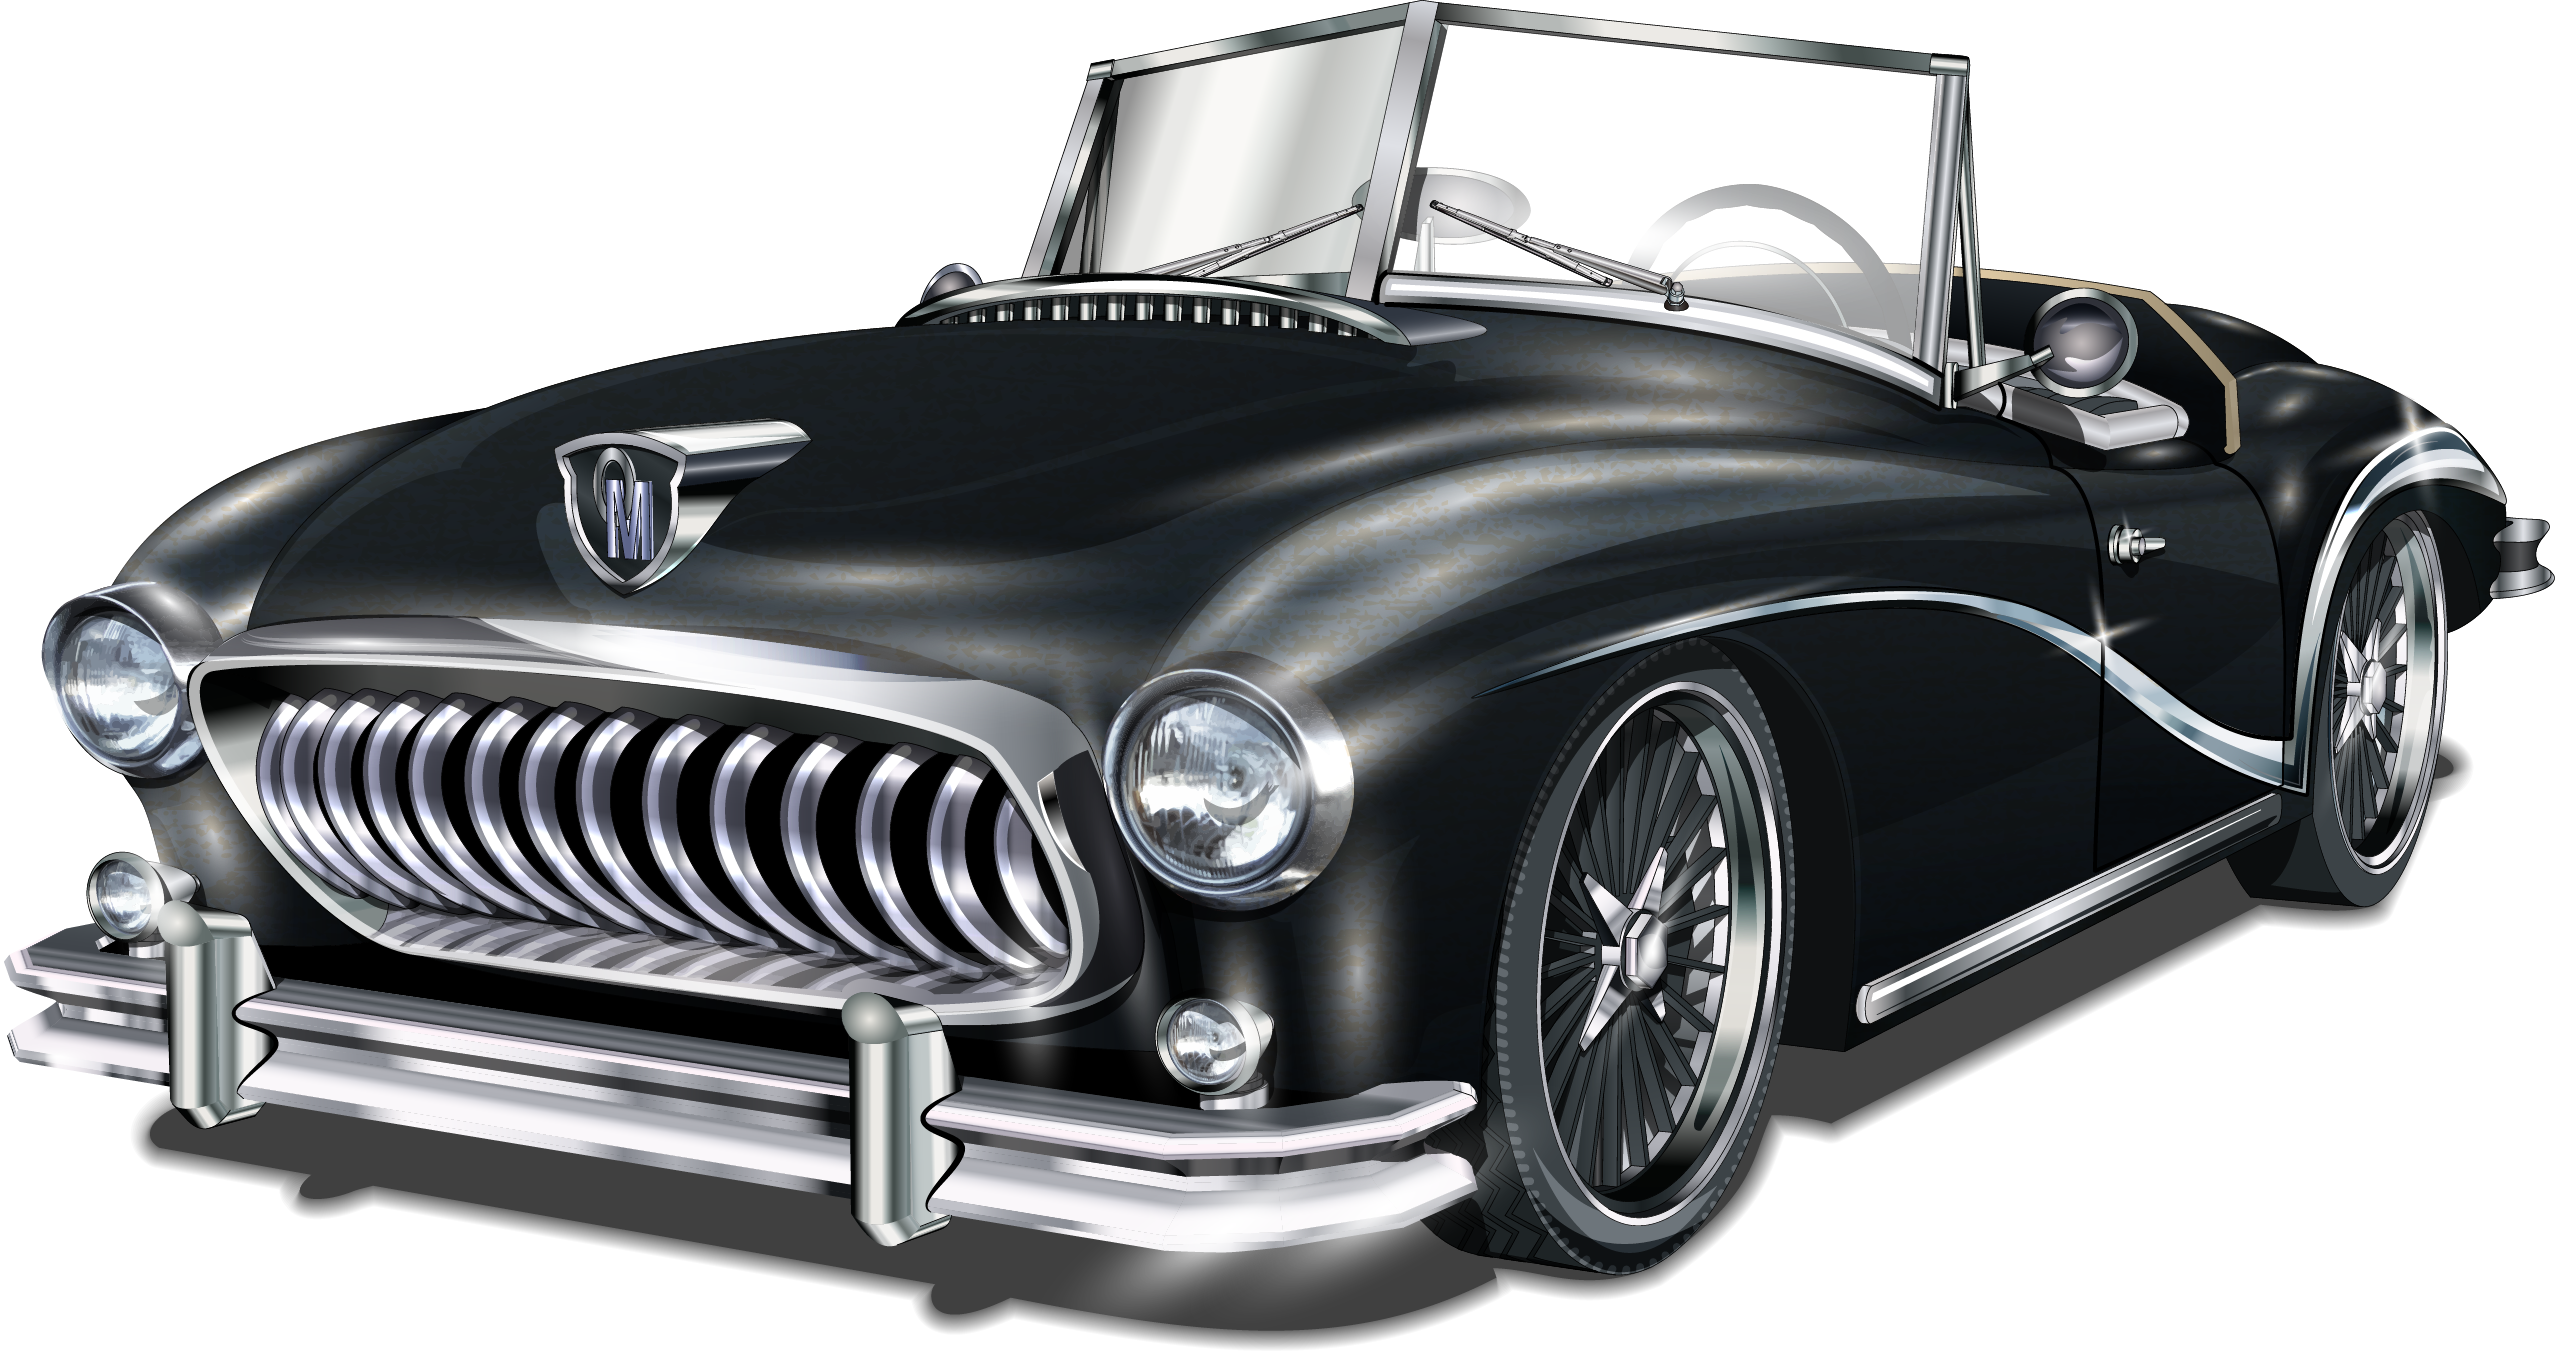 Download Car Cars Vector Vintage Classic Hd Image Free Png Clipart Png Free Freepngclipart Classic Cars Car Vintage Cars